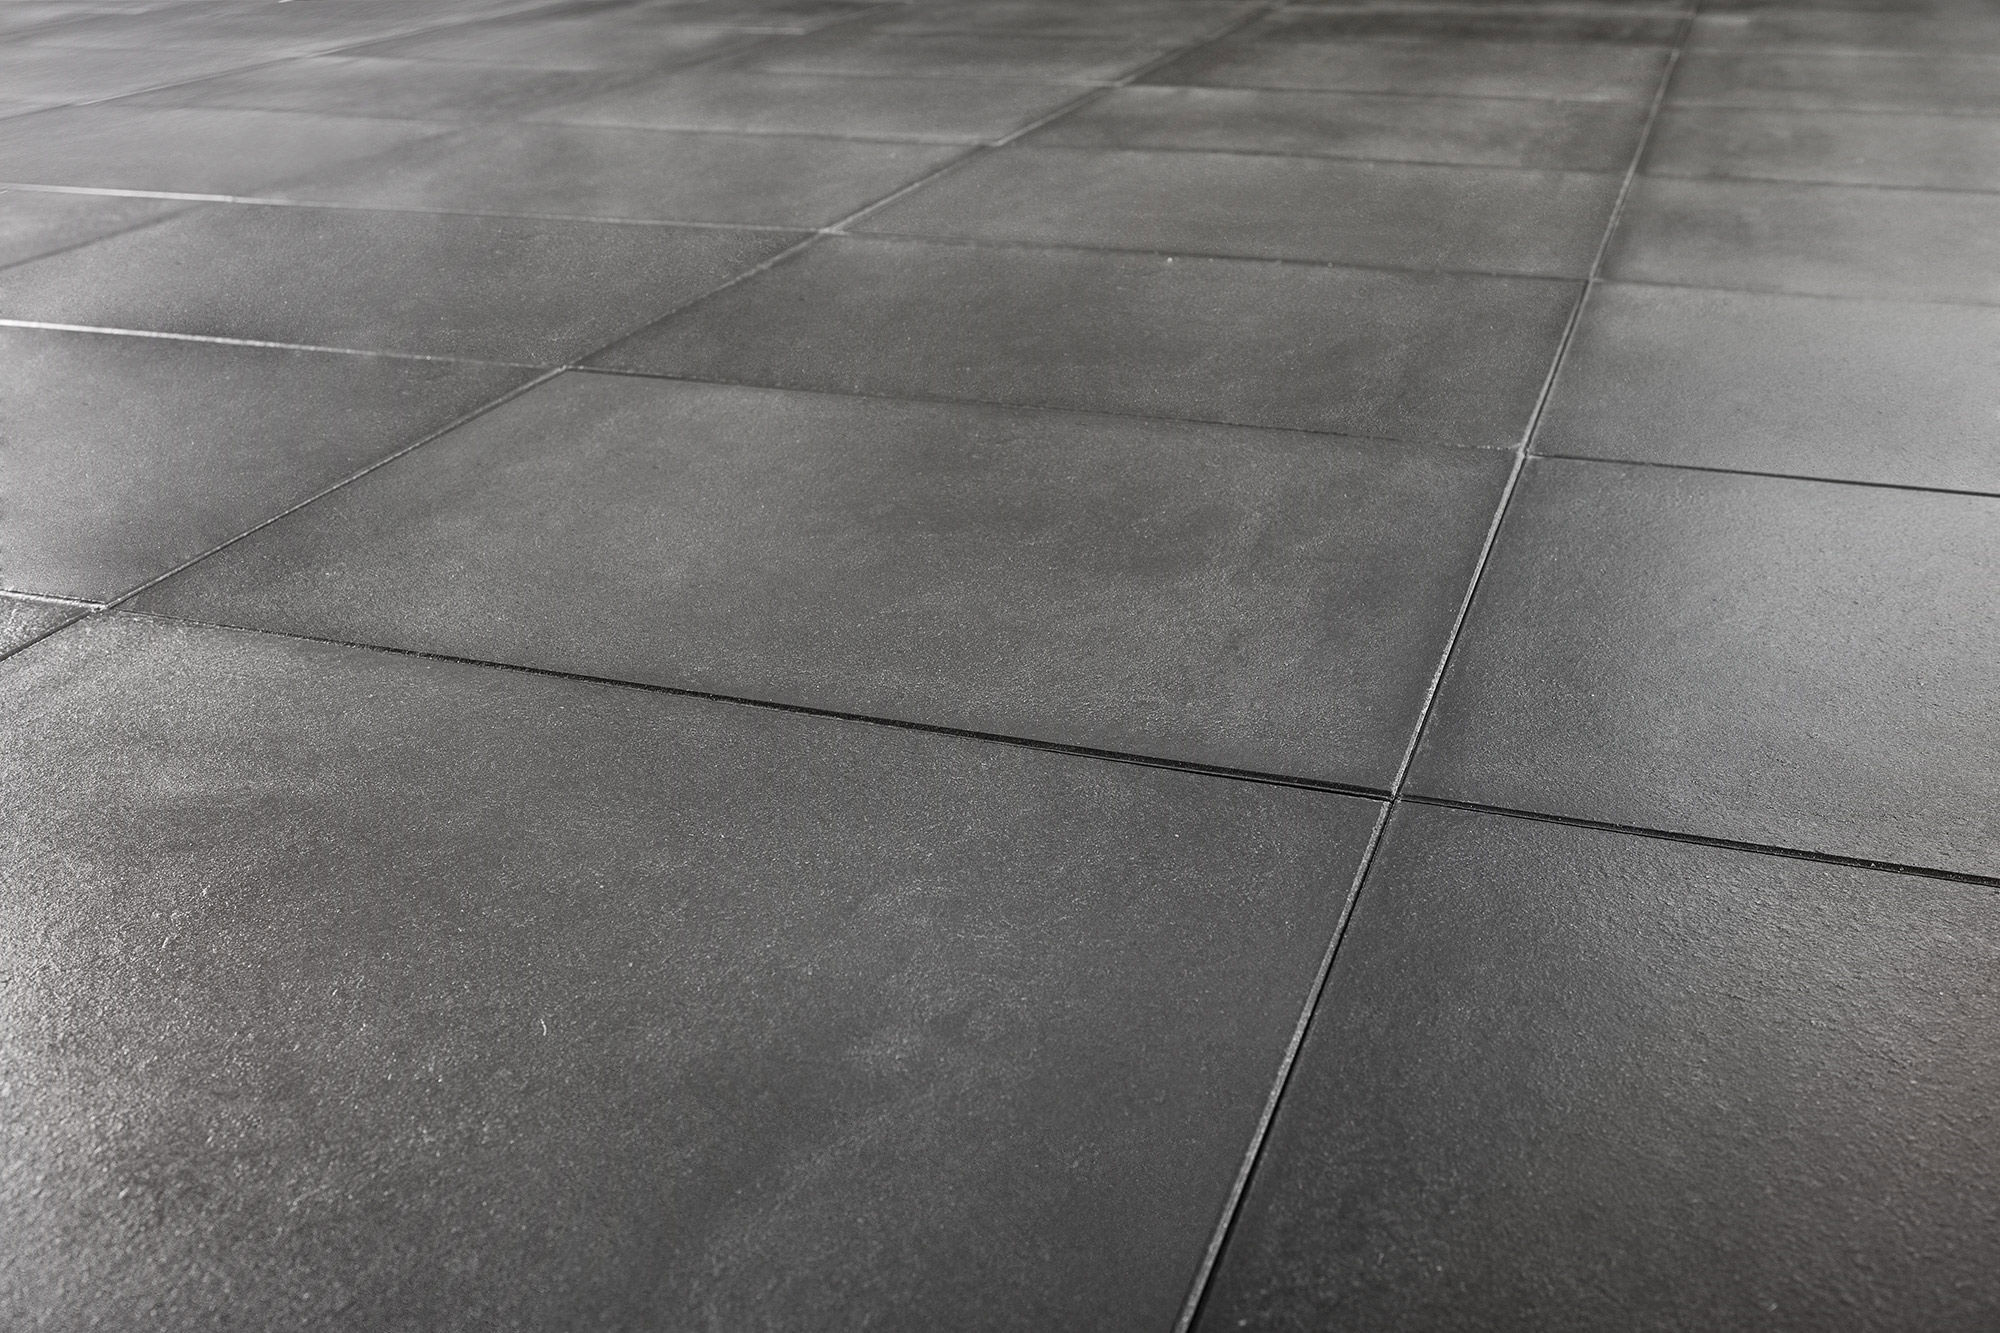 Outdoor Tile / Floor / Concrete / Plain   MATERIA